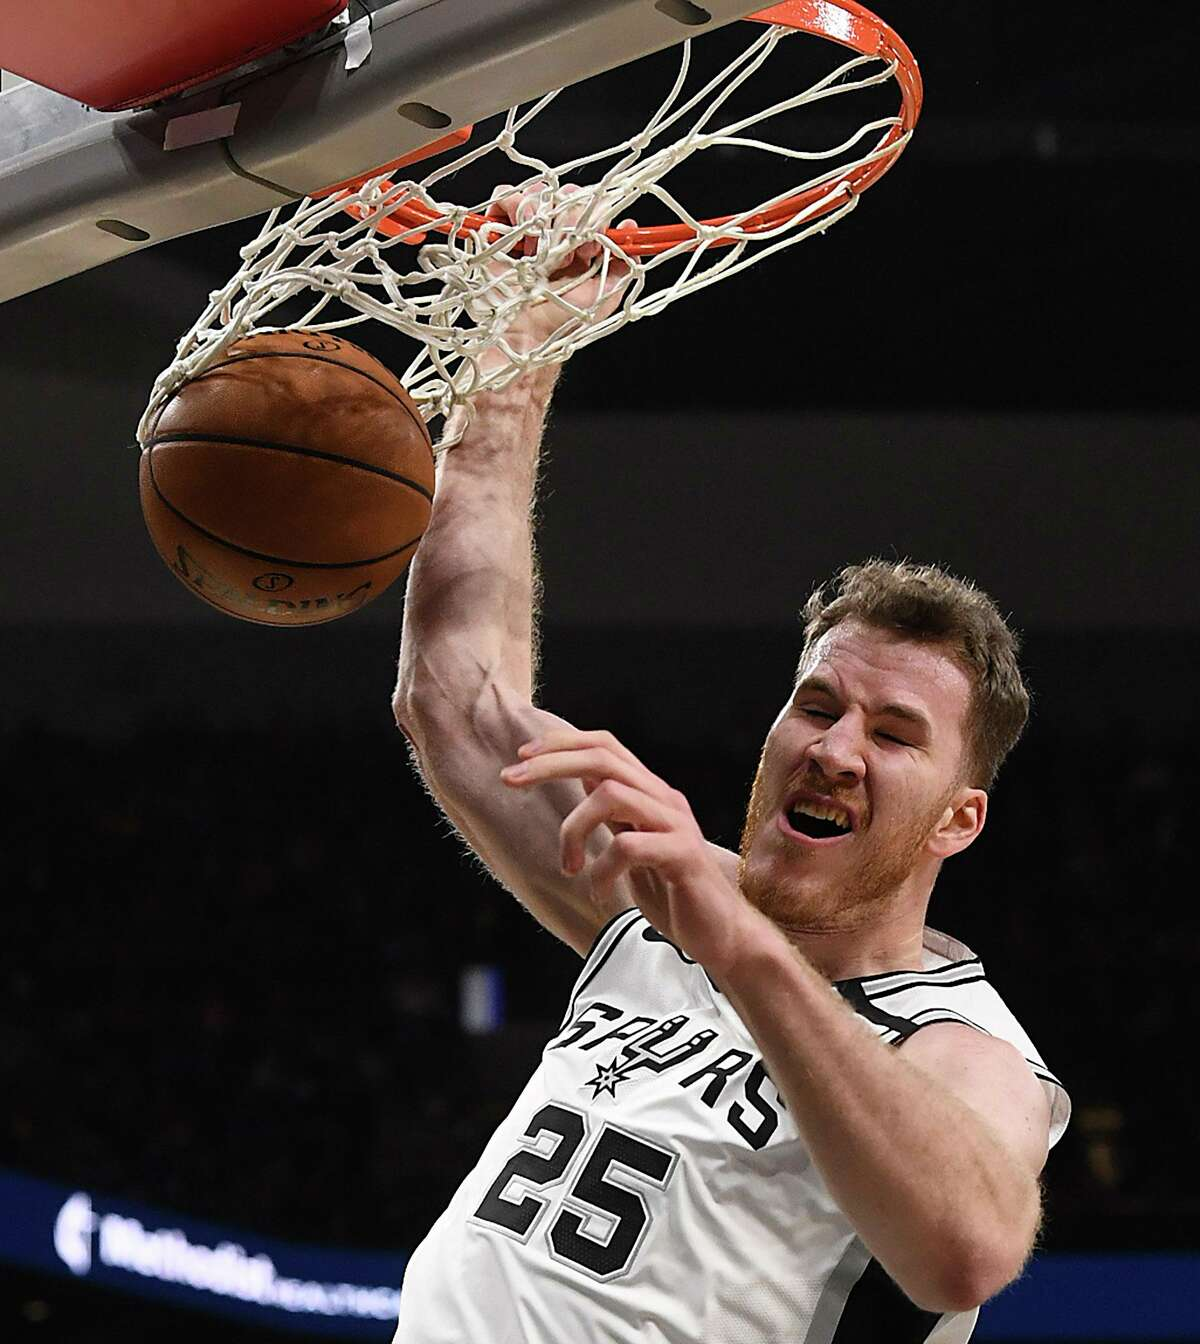 Jakob Poeltl of the San Antonio Spurs dunks as Maxi Kleber of the Dallas Mavericks watches during first-half NBA action in the AT&T Center on Wednesday, Feb. 26, 2020.